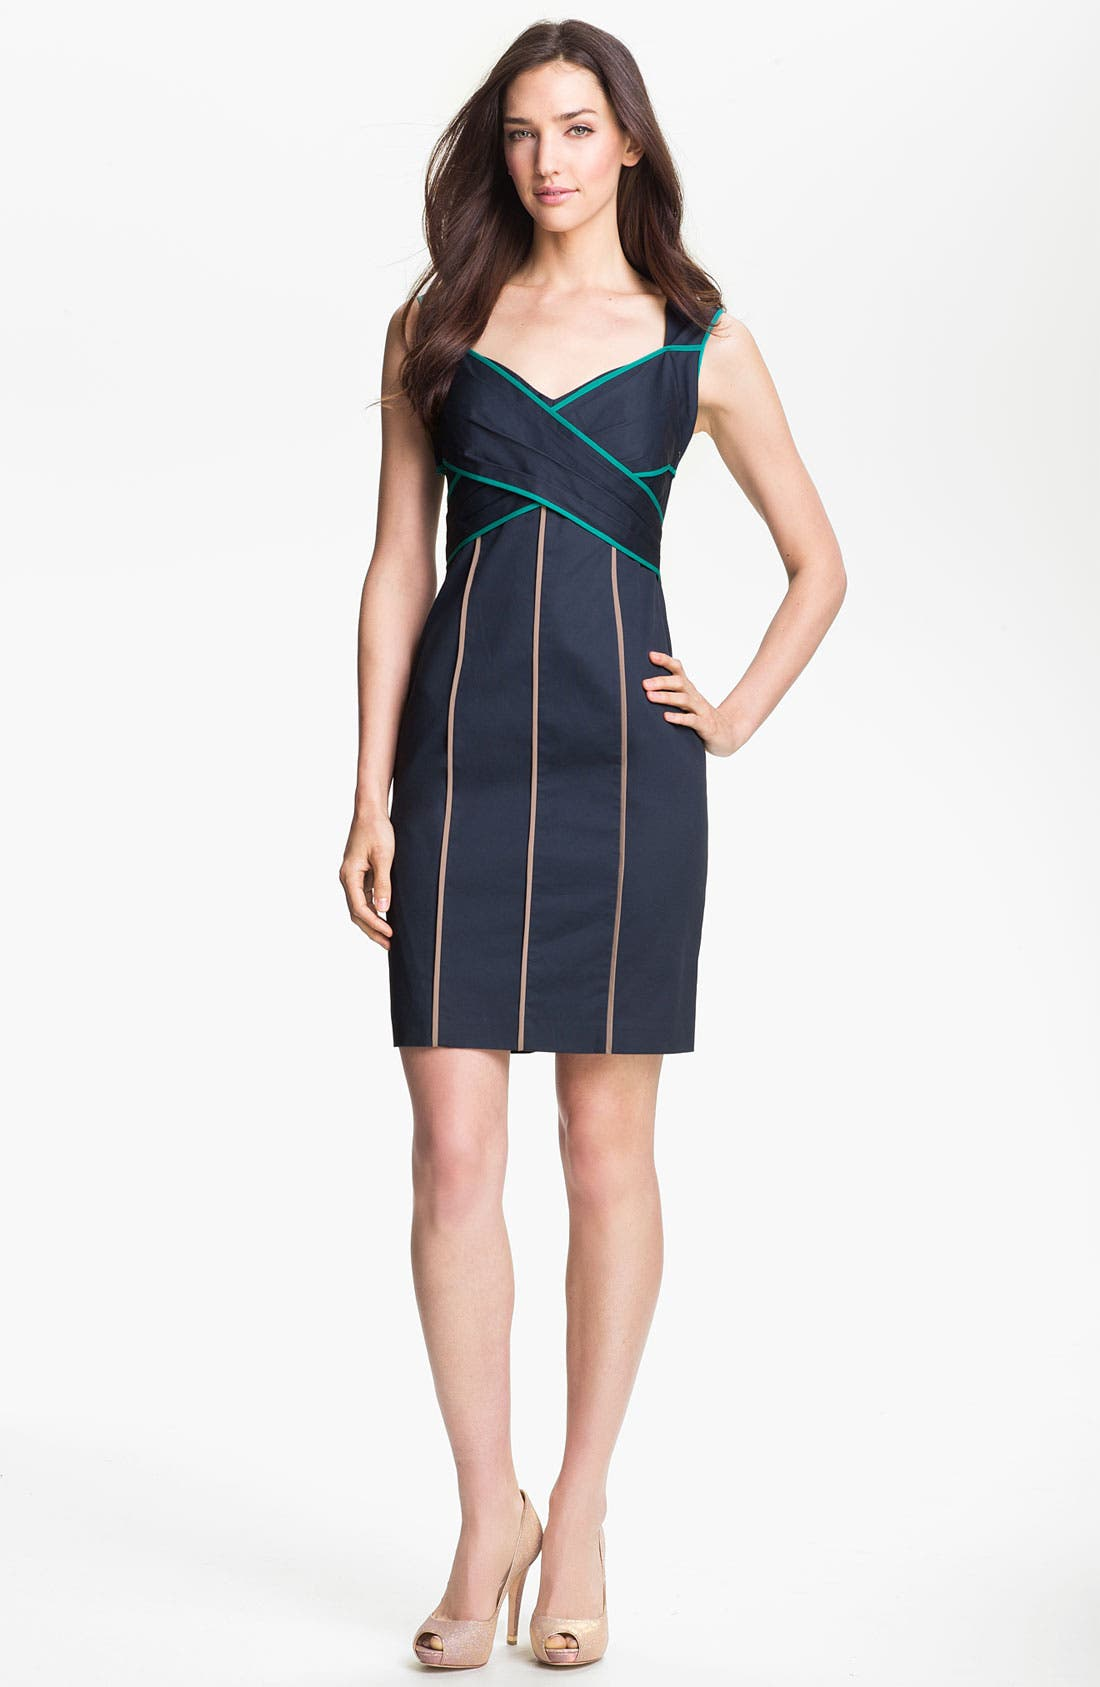 Main Image - Jessica Simpson Contrast Piping Cotton Sheath Dress